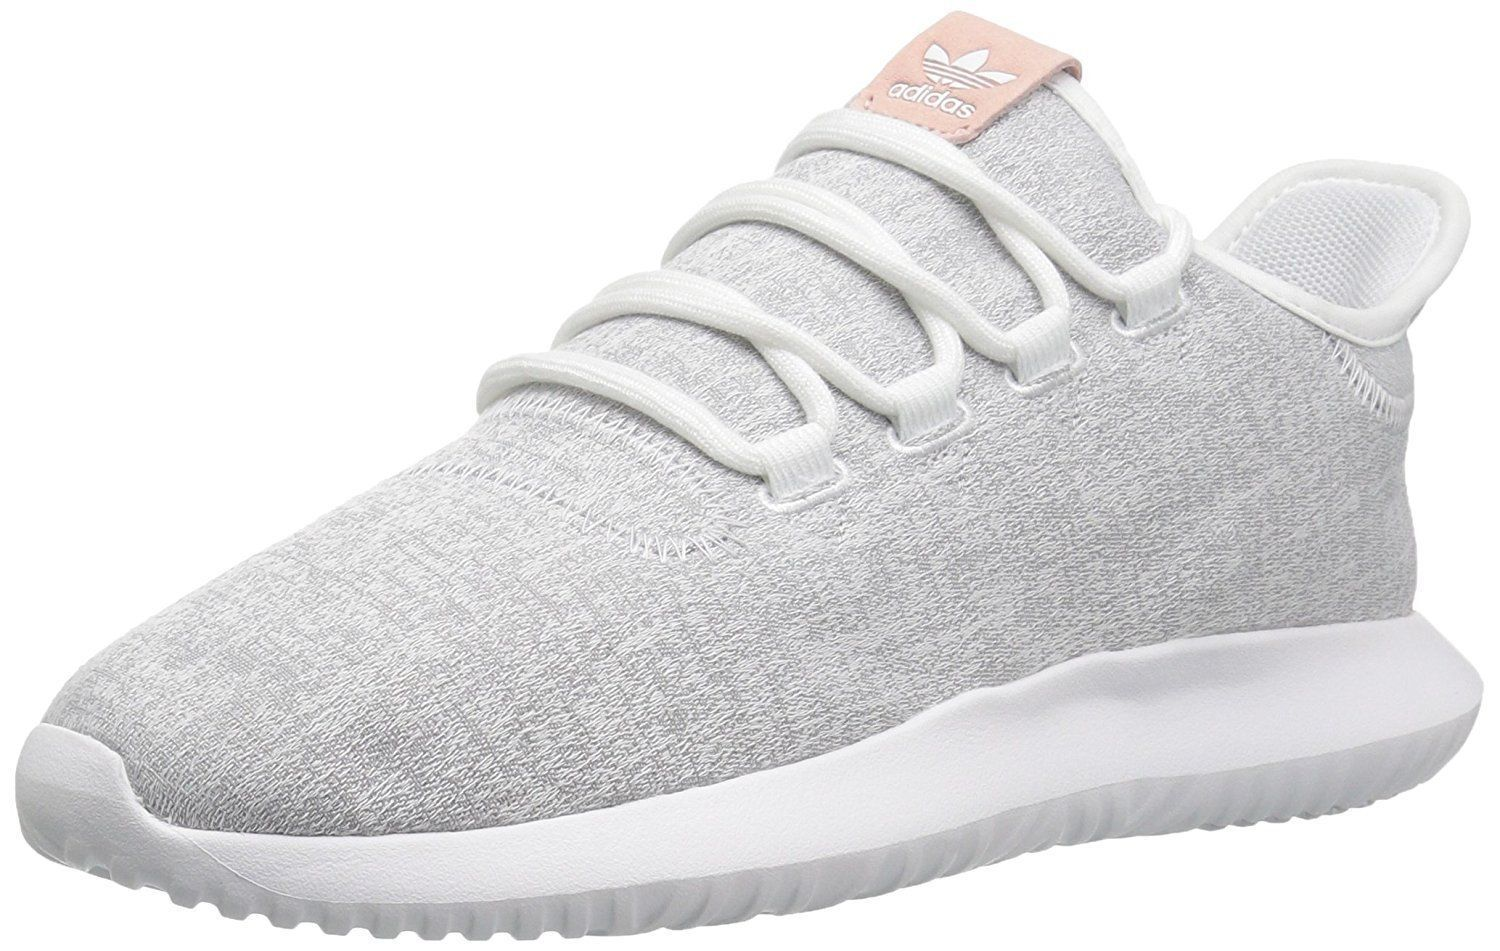 ADIDAS TUBULAR SHADOW LOW SNEAKERS WOMEN SHOES WHITE GREY Y9735 SIZE 8 NEW